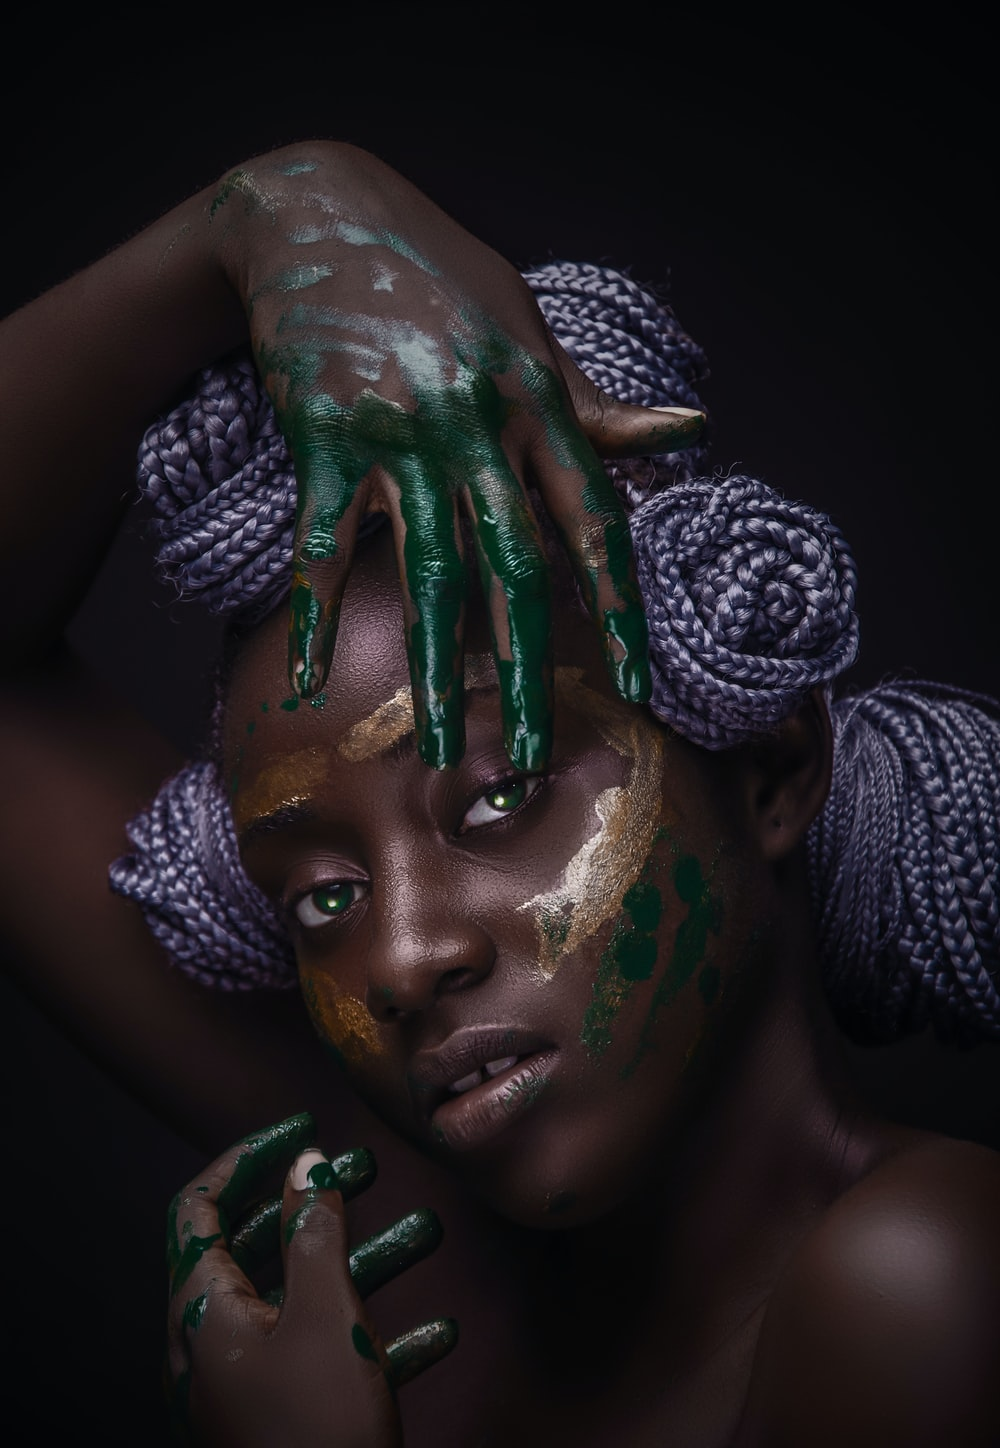 woman with green and white paint on face